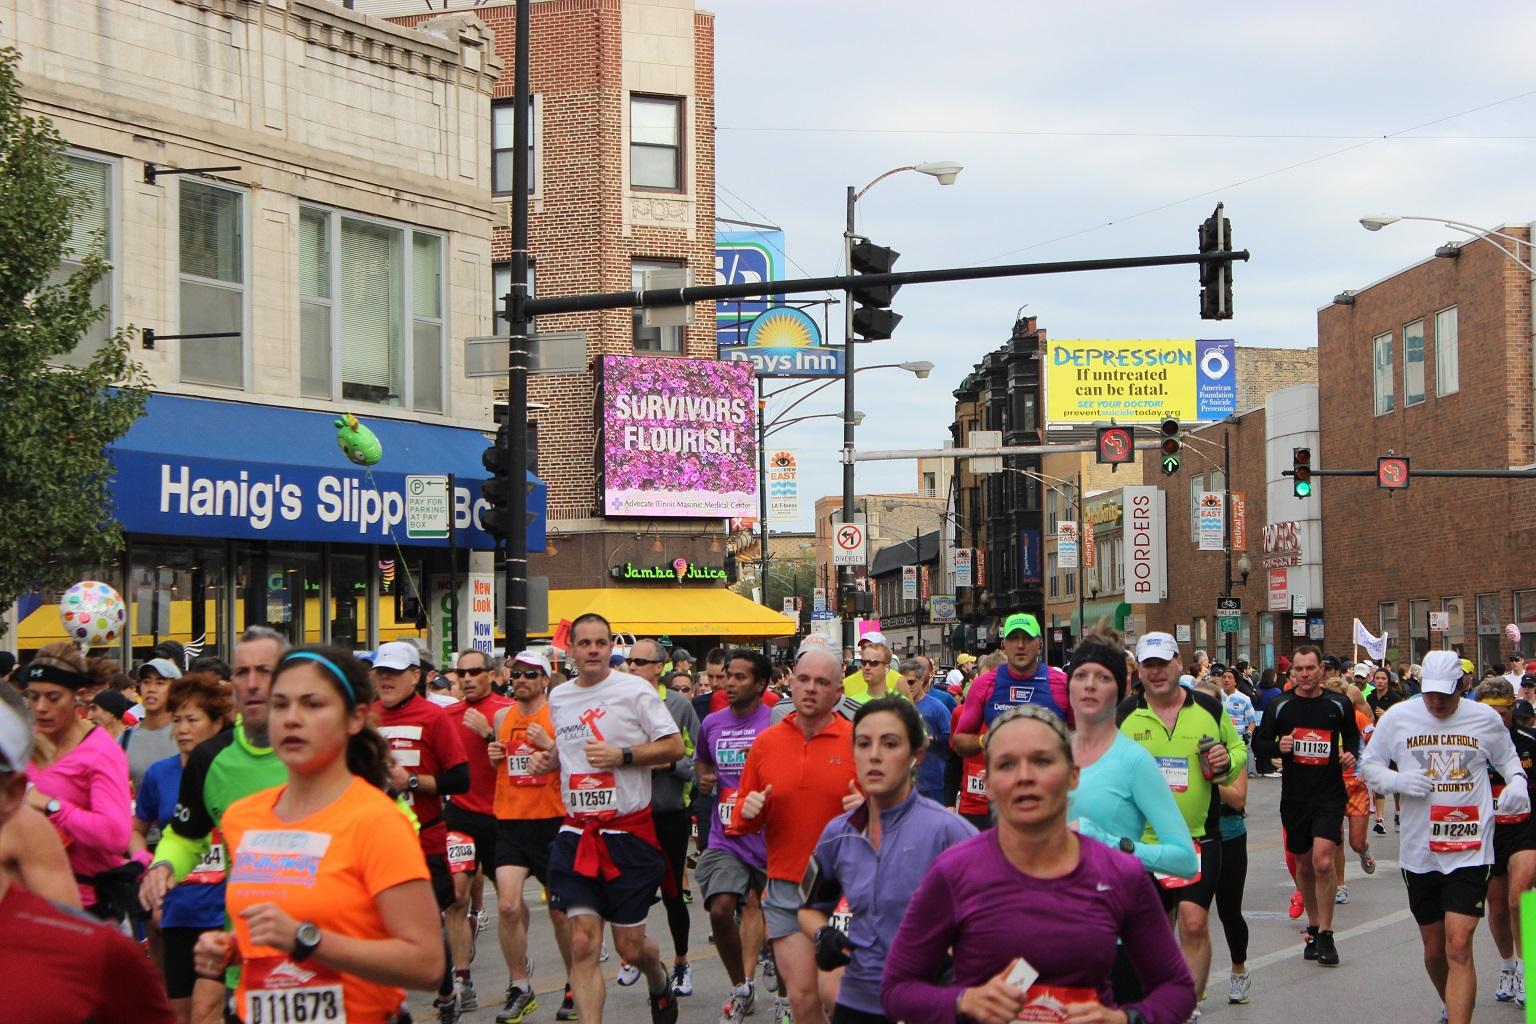 Runners participate in the 2012 Chicago Marathon near the intersection of Clark Street and Diversey Parkway. (Benjamin Lipsman / Flickr)